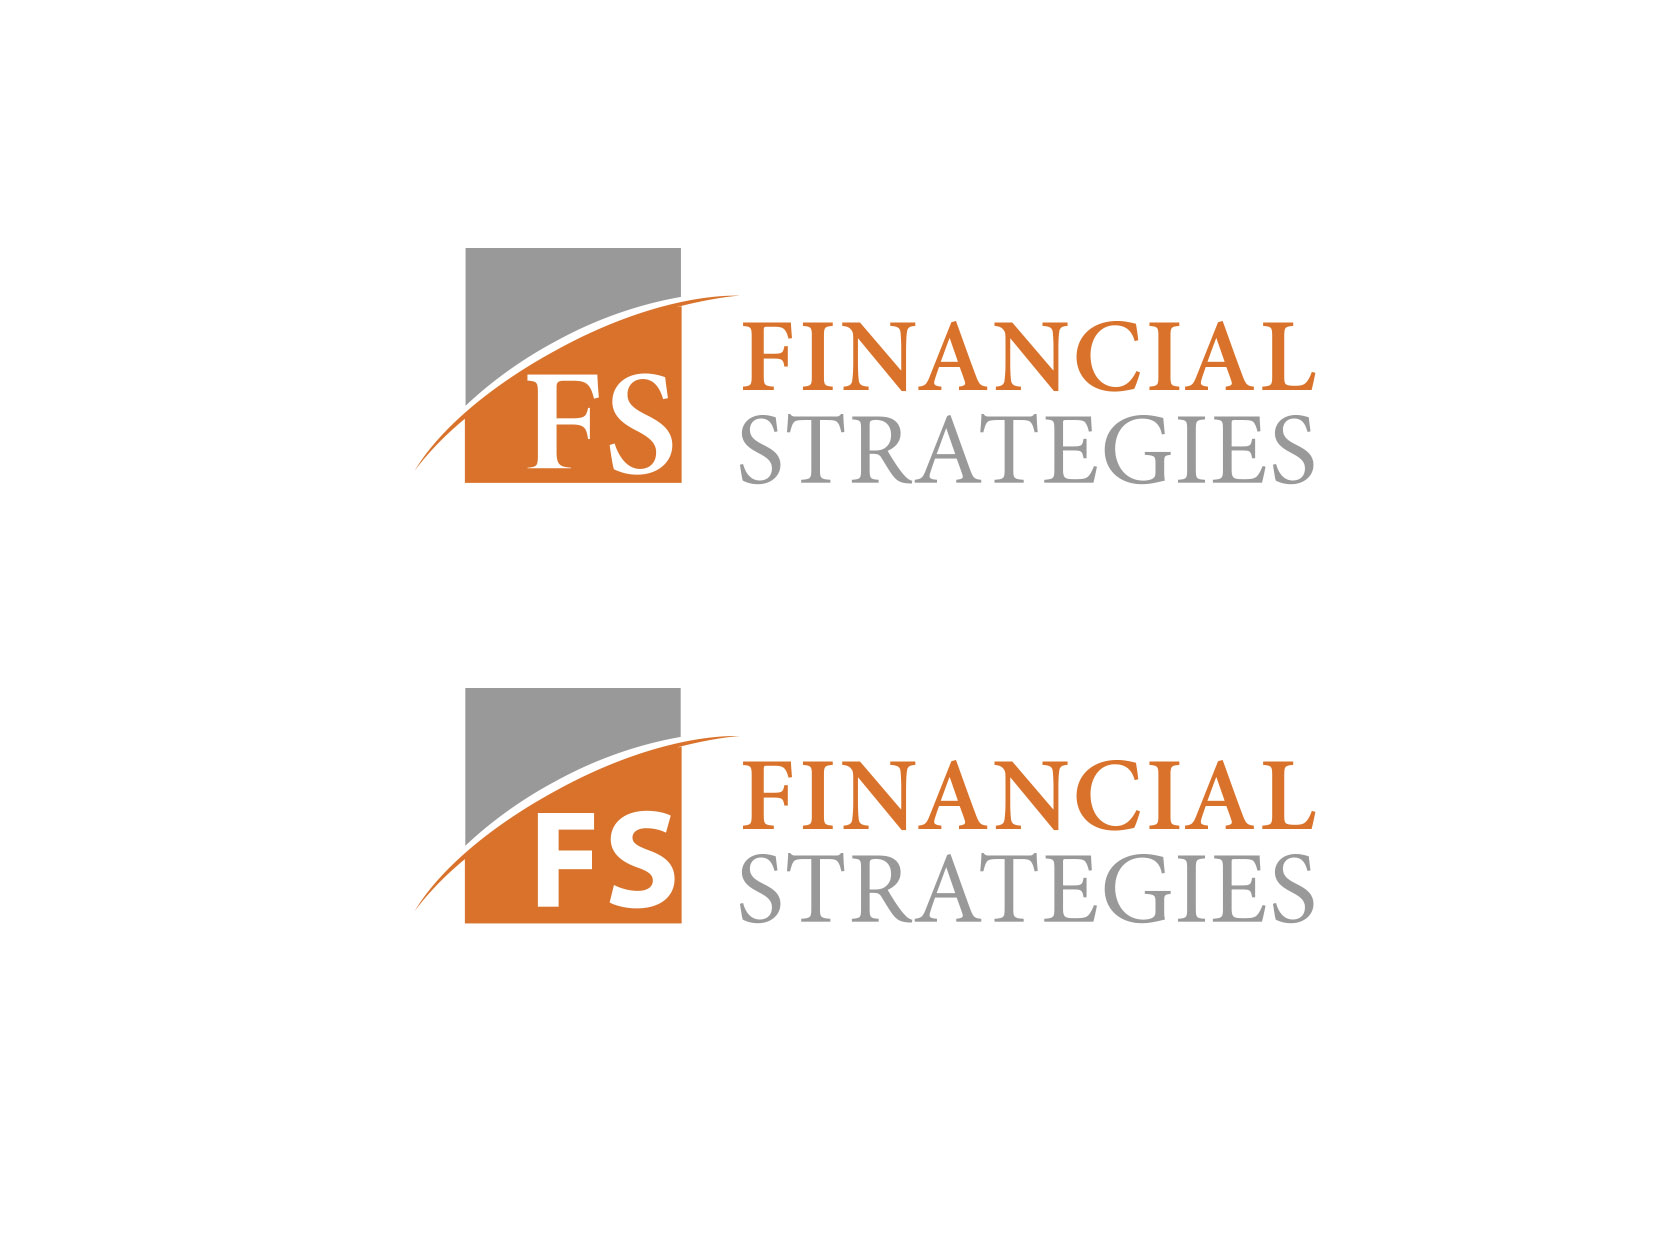 Logo Design by ddamian_dd - Entry No. 52 in the Logo Design Contest Logo Design Needed for Exciting New Company FS Financial Strategies.